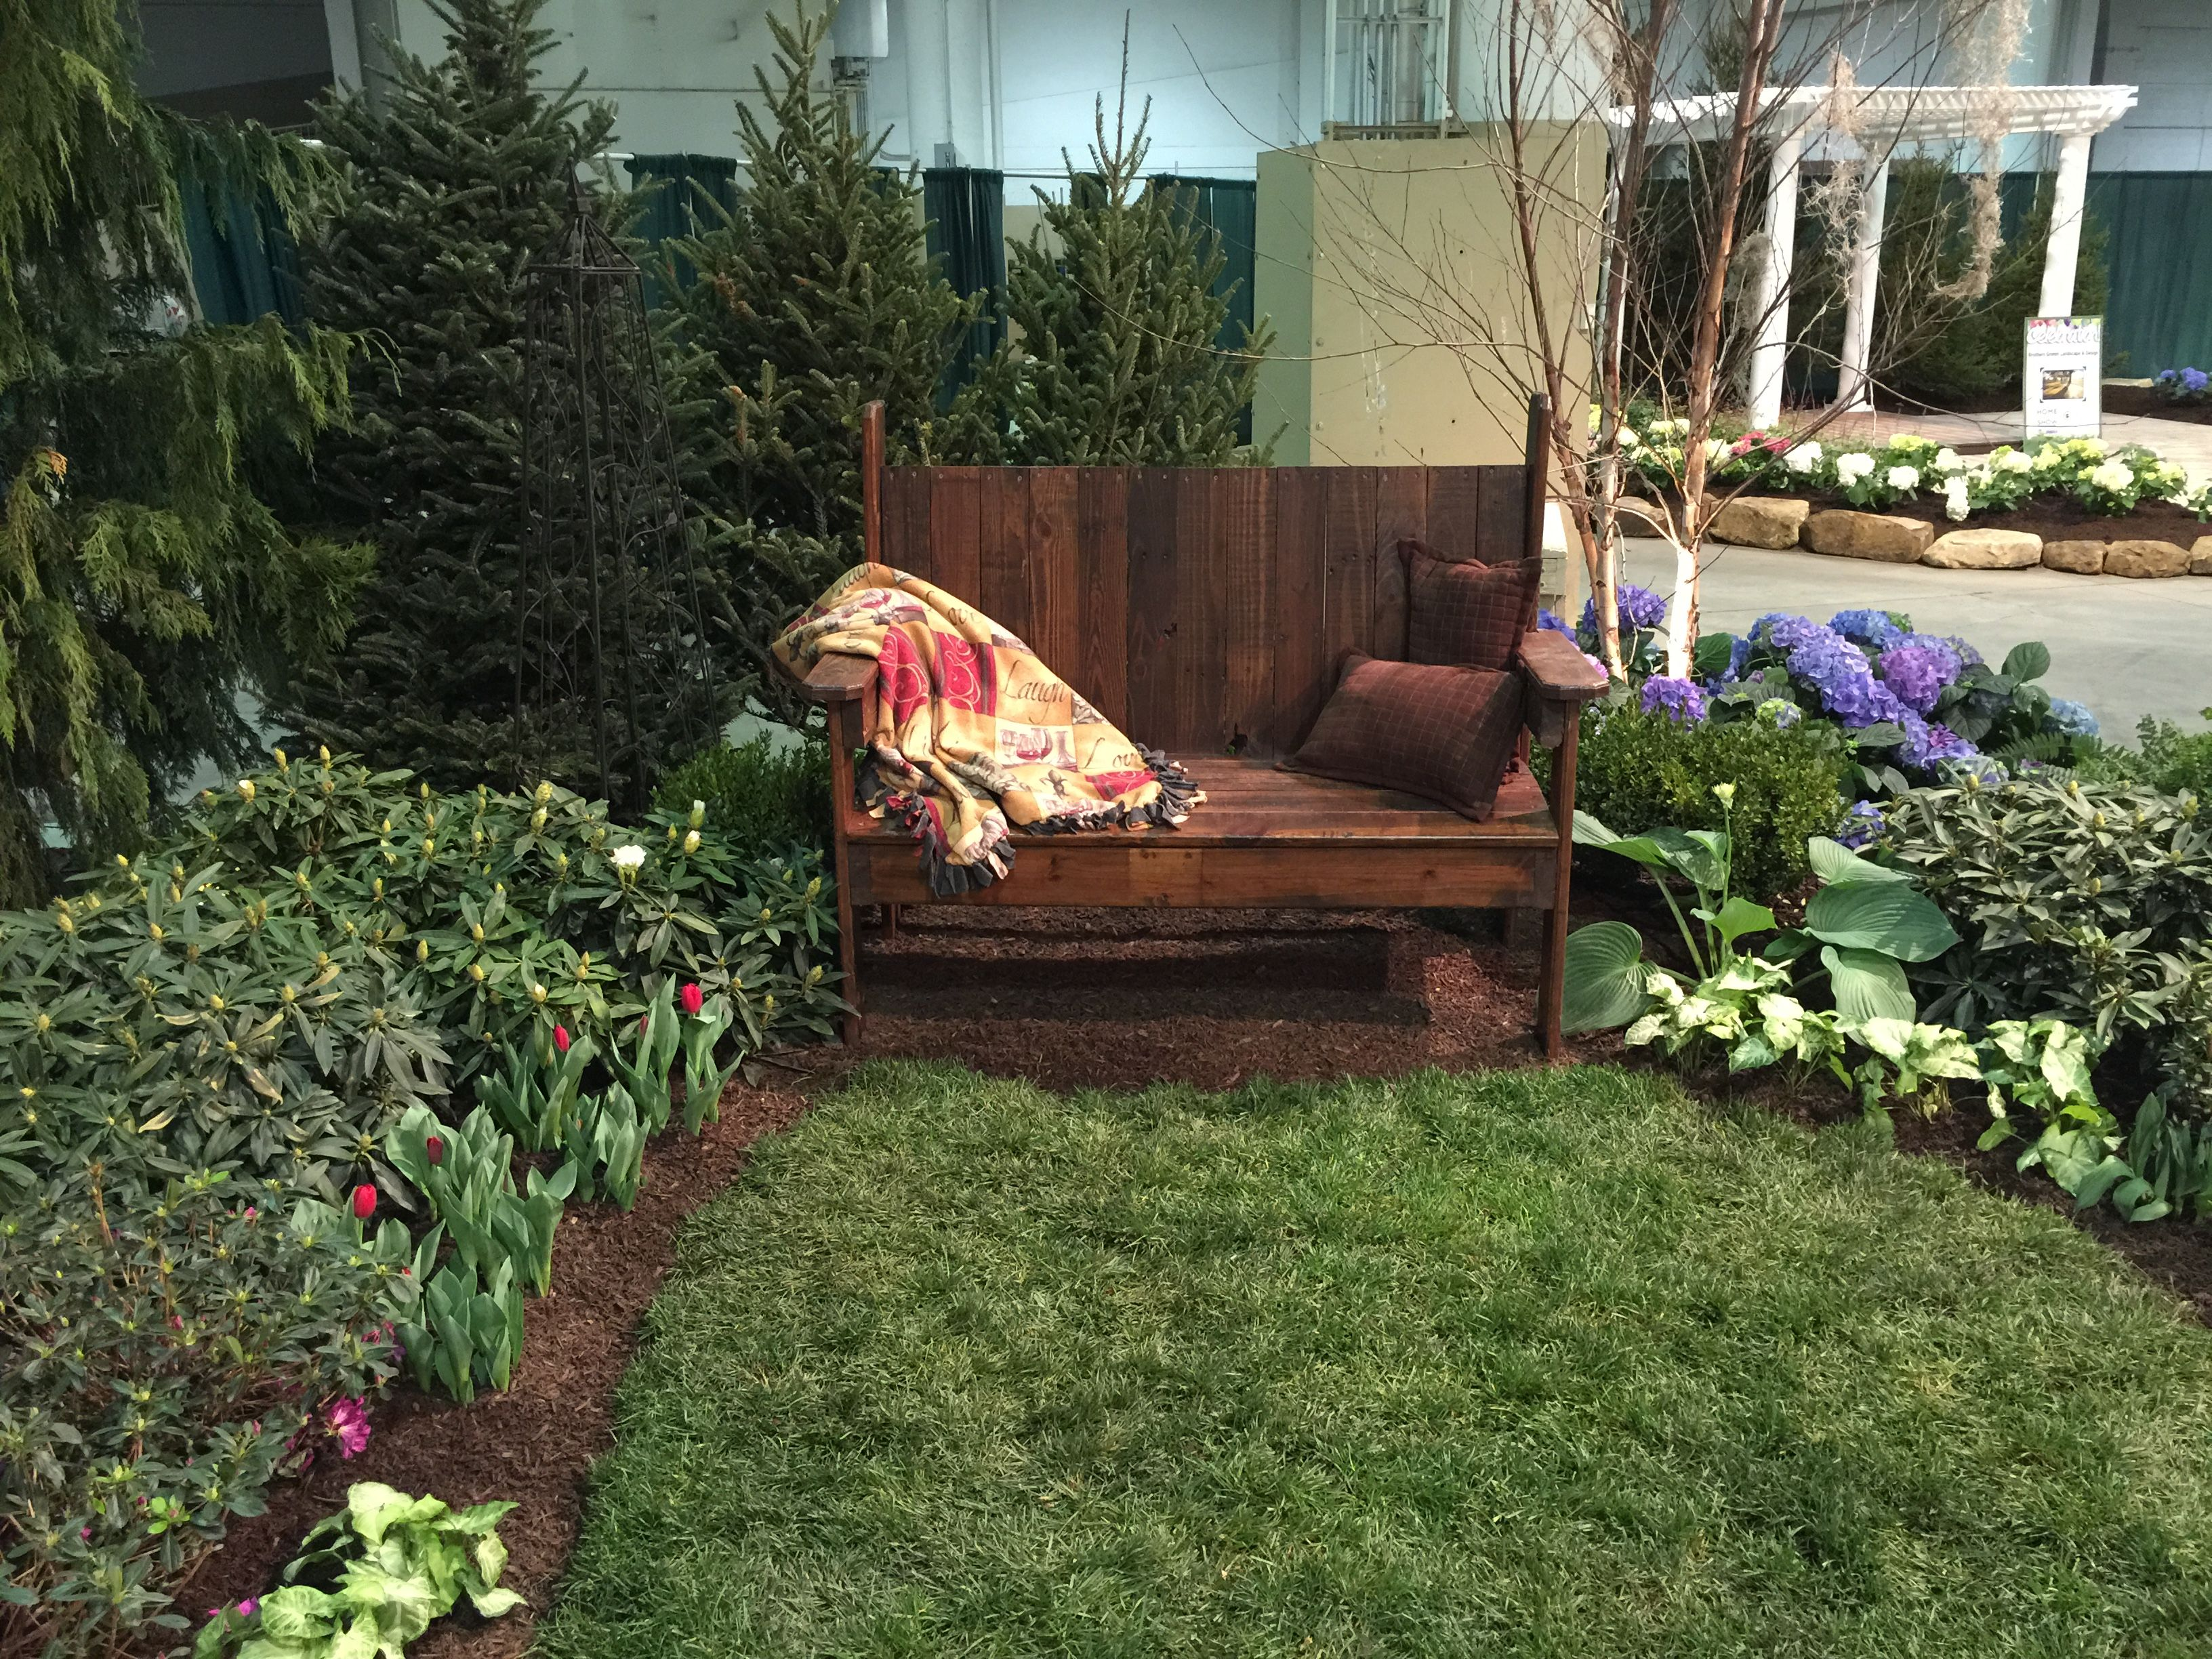 Dorable Home And Garden Show Cleveland Ohio Elaboration   Beautiful .